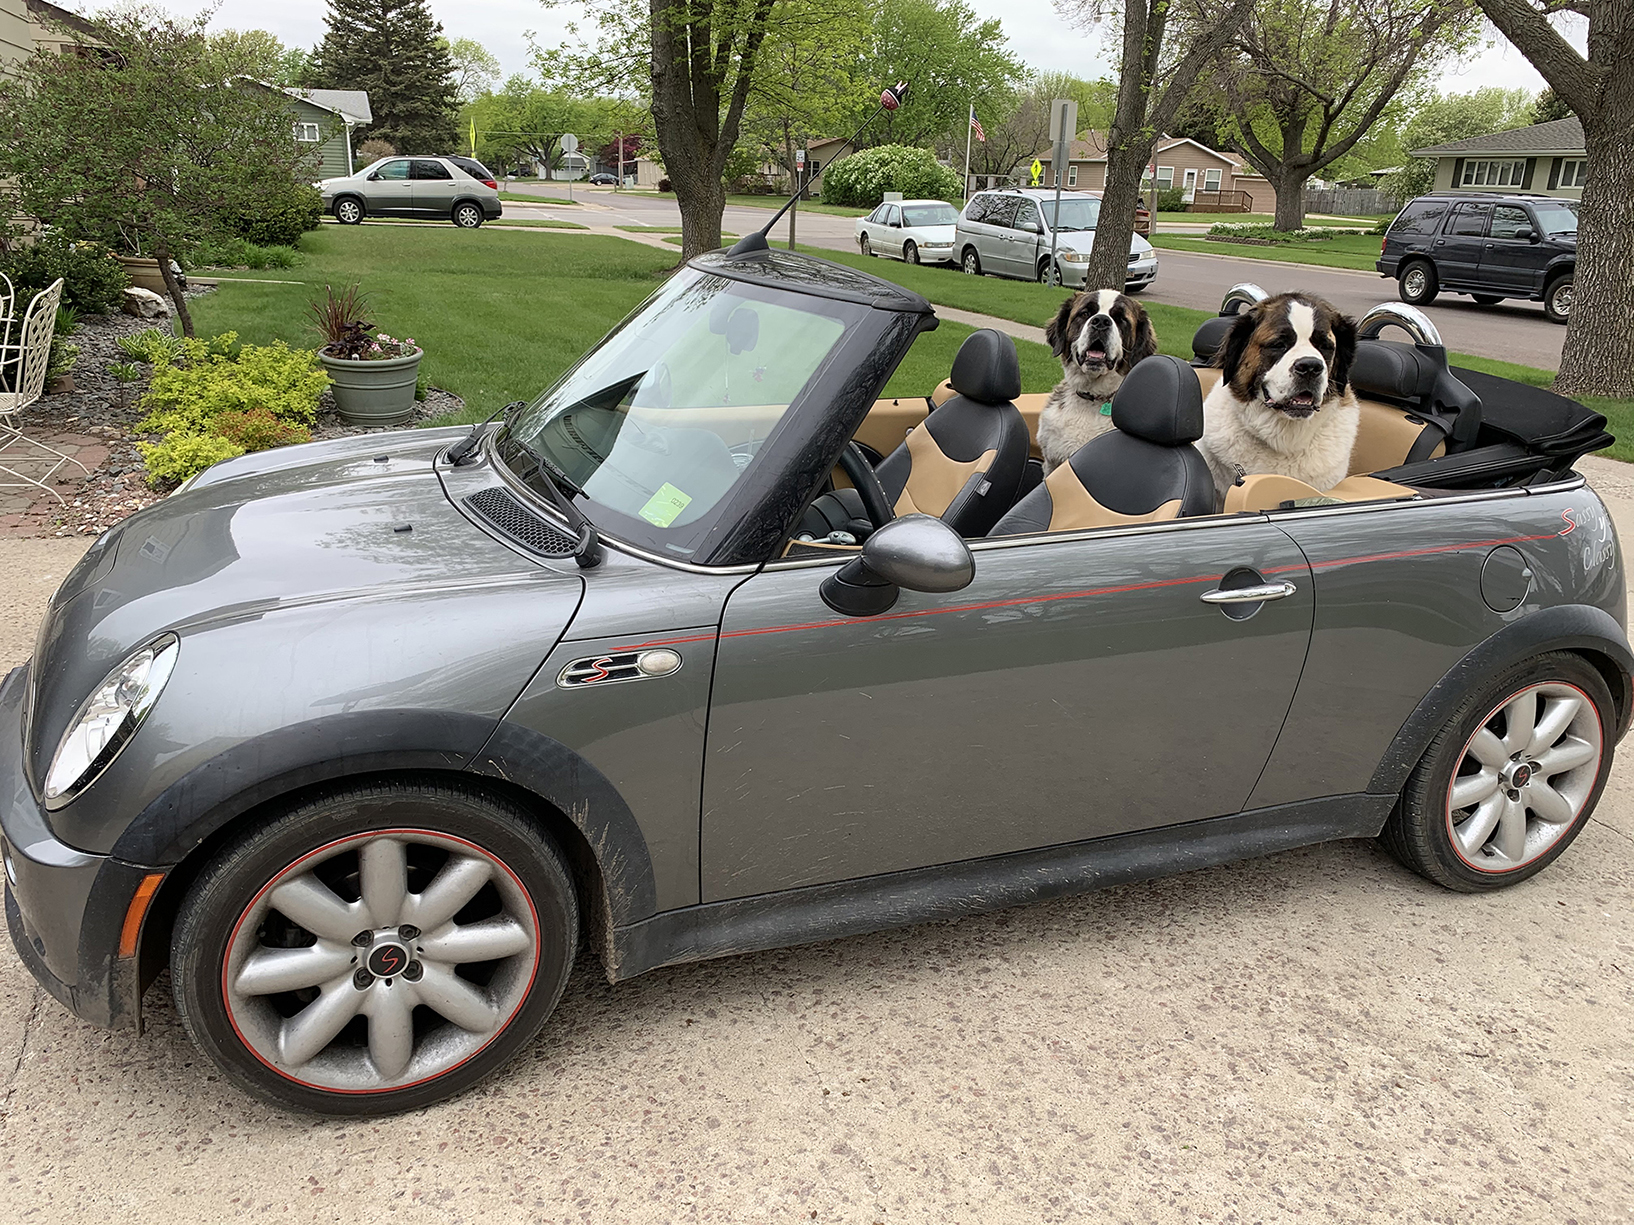 dogs go for a ride in a car